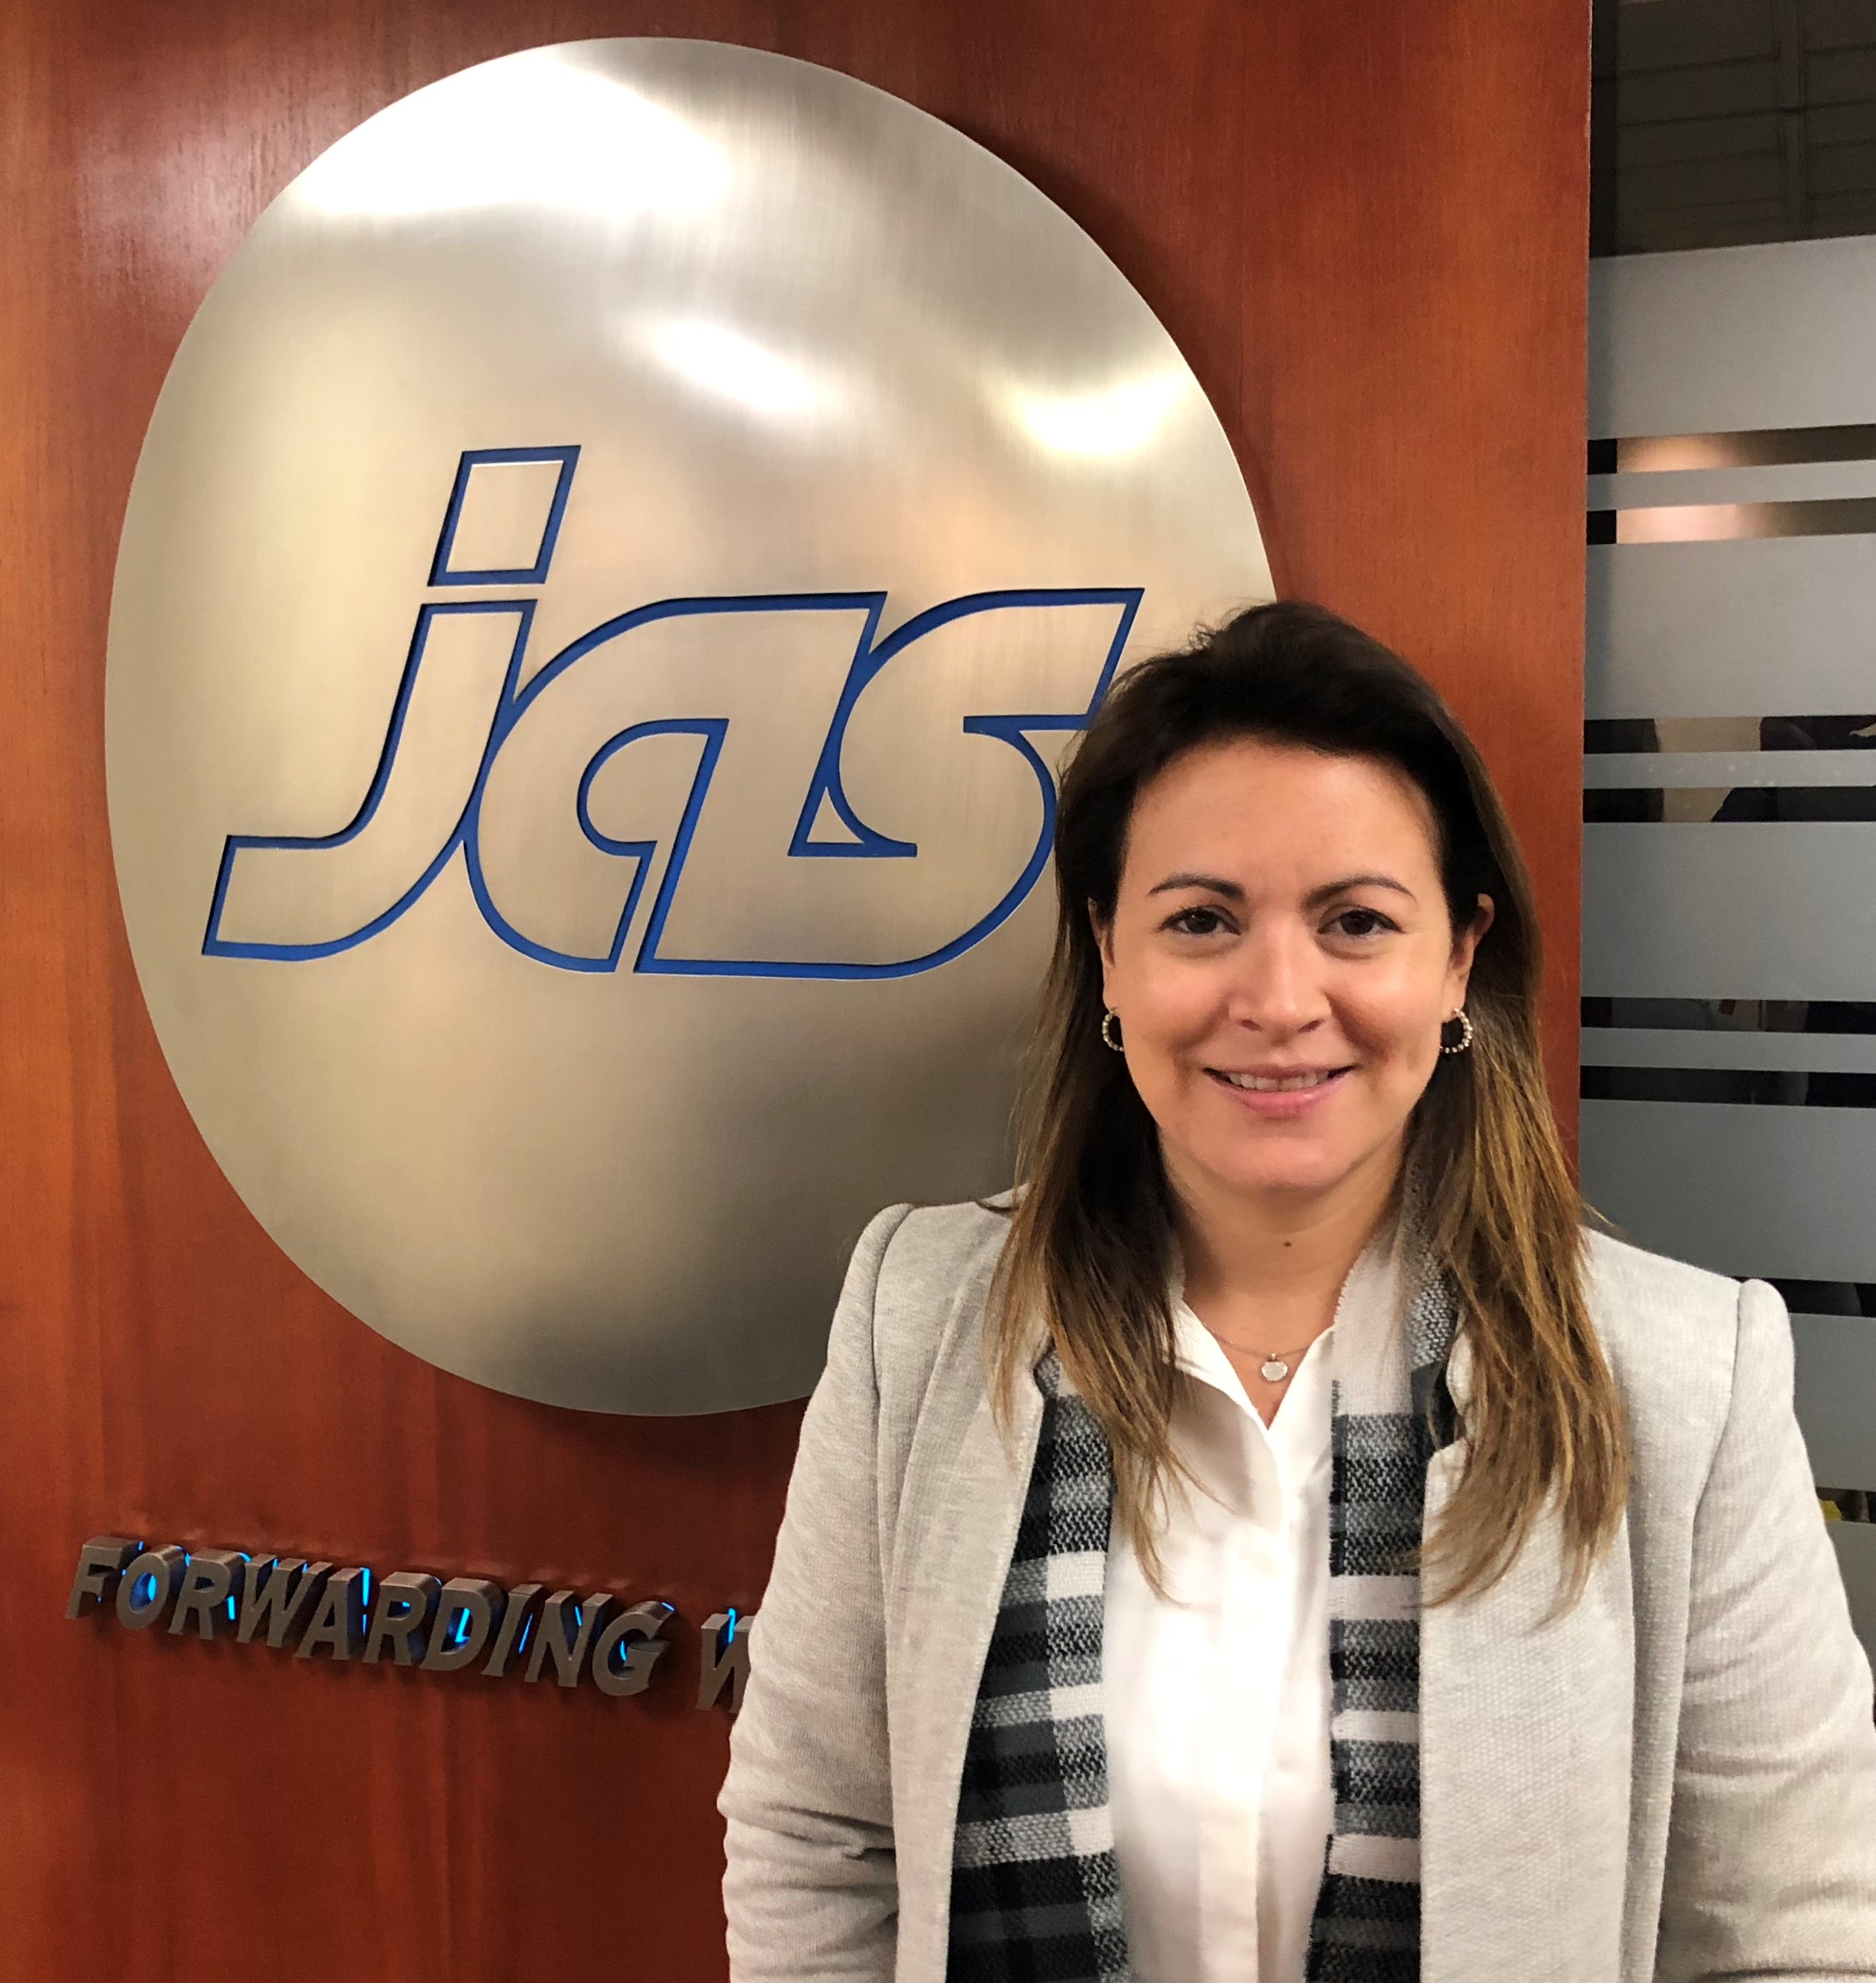 Carolina Matamala, JAS Chile Sales Manager